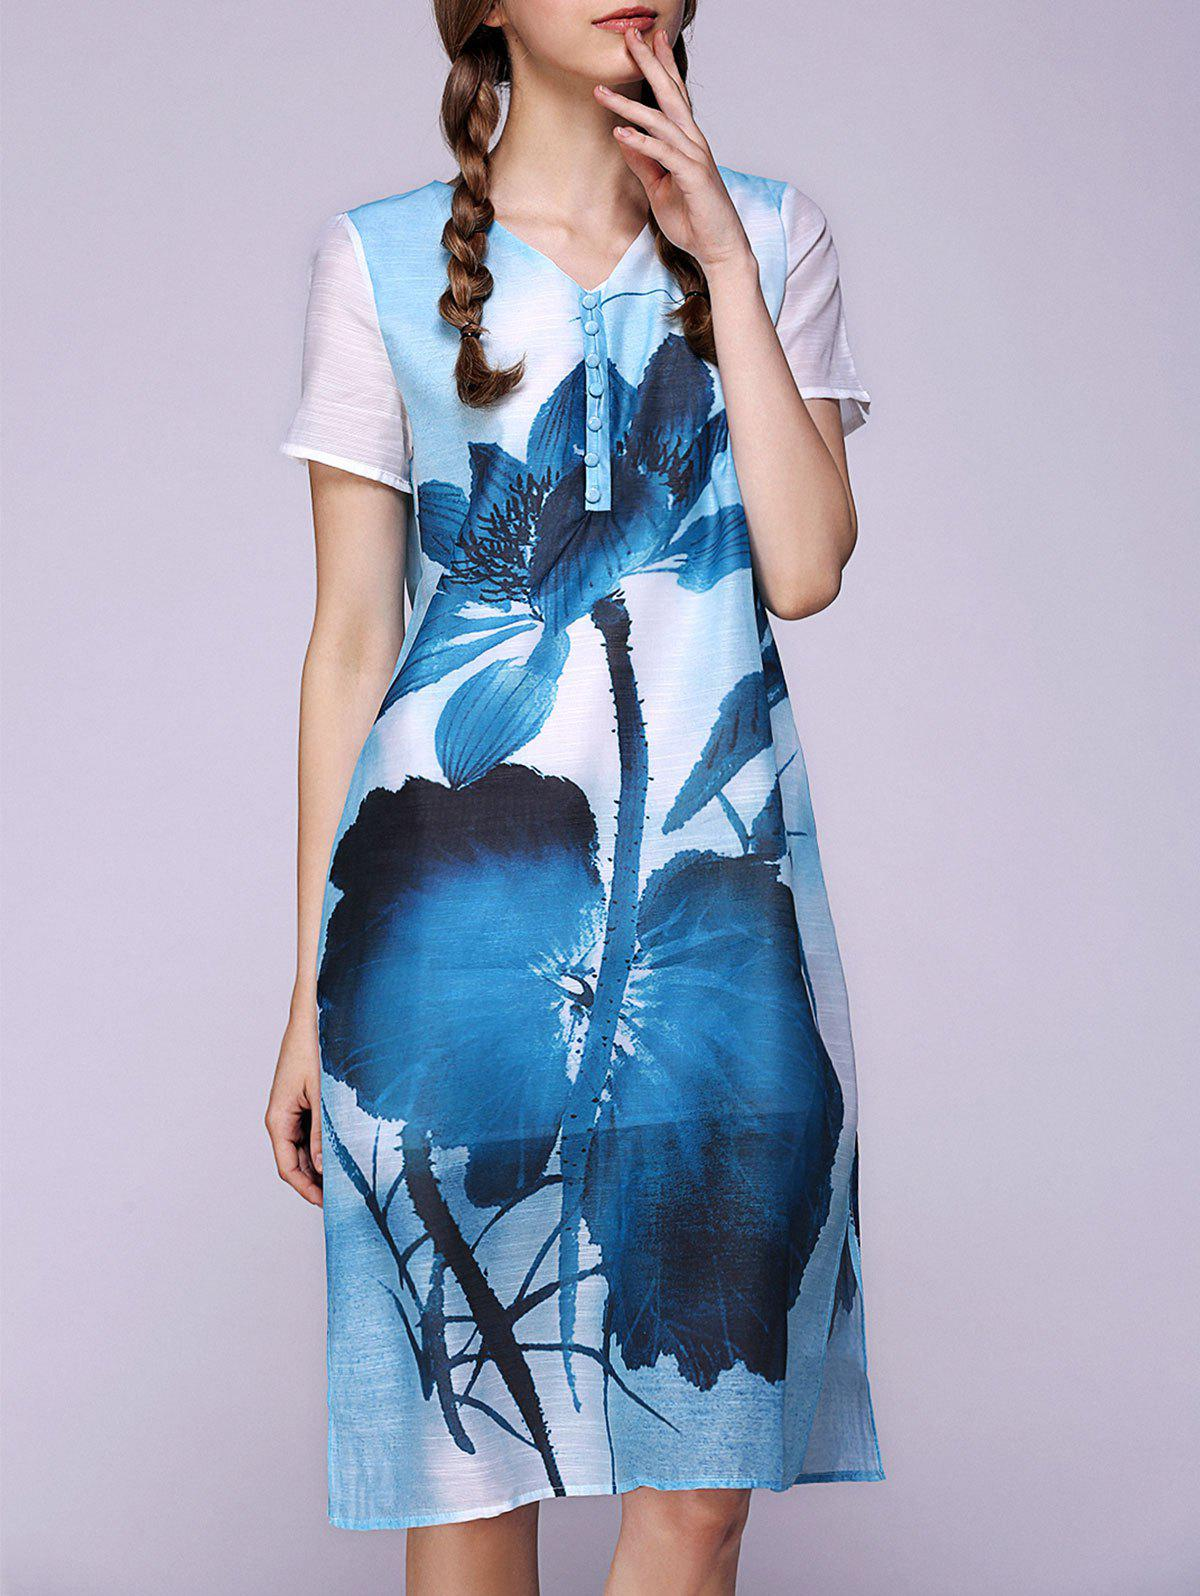 Lotus Flower Ink Painting V Neck Slit Dress - BLUE 3XL